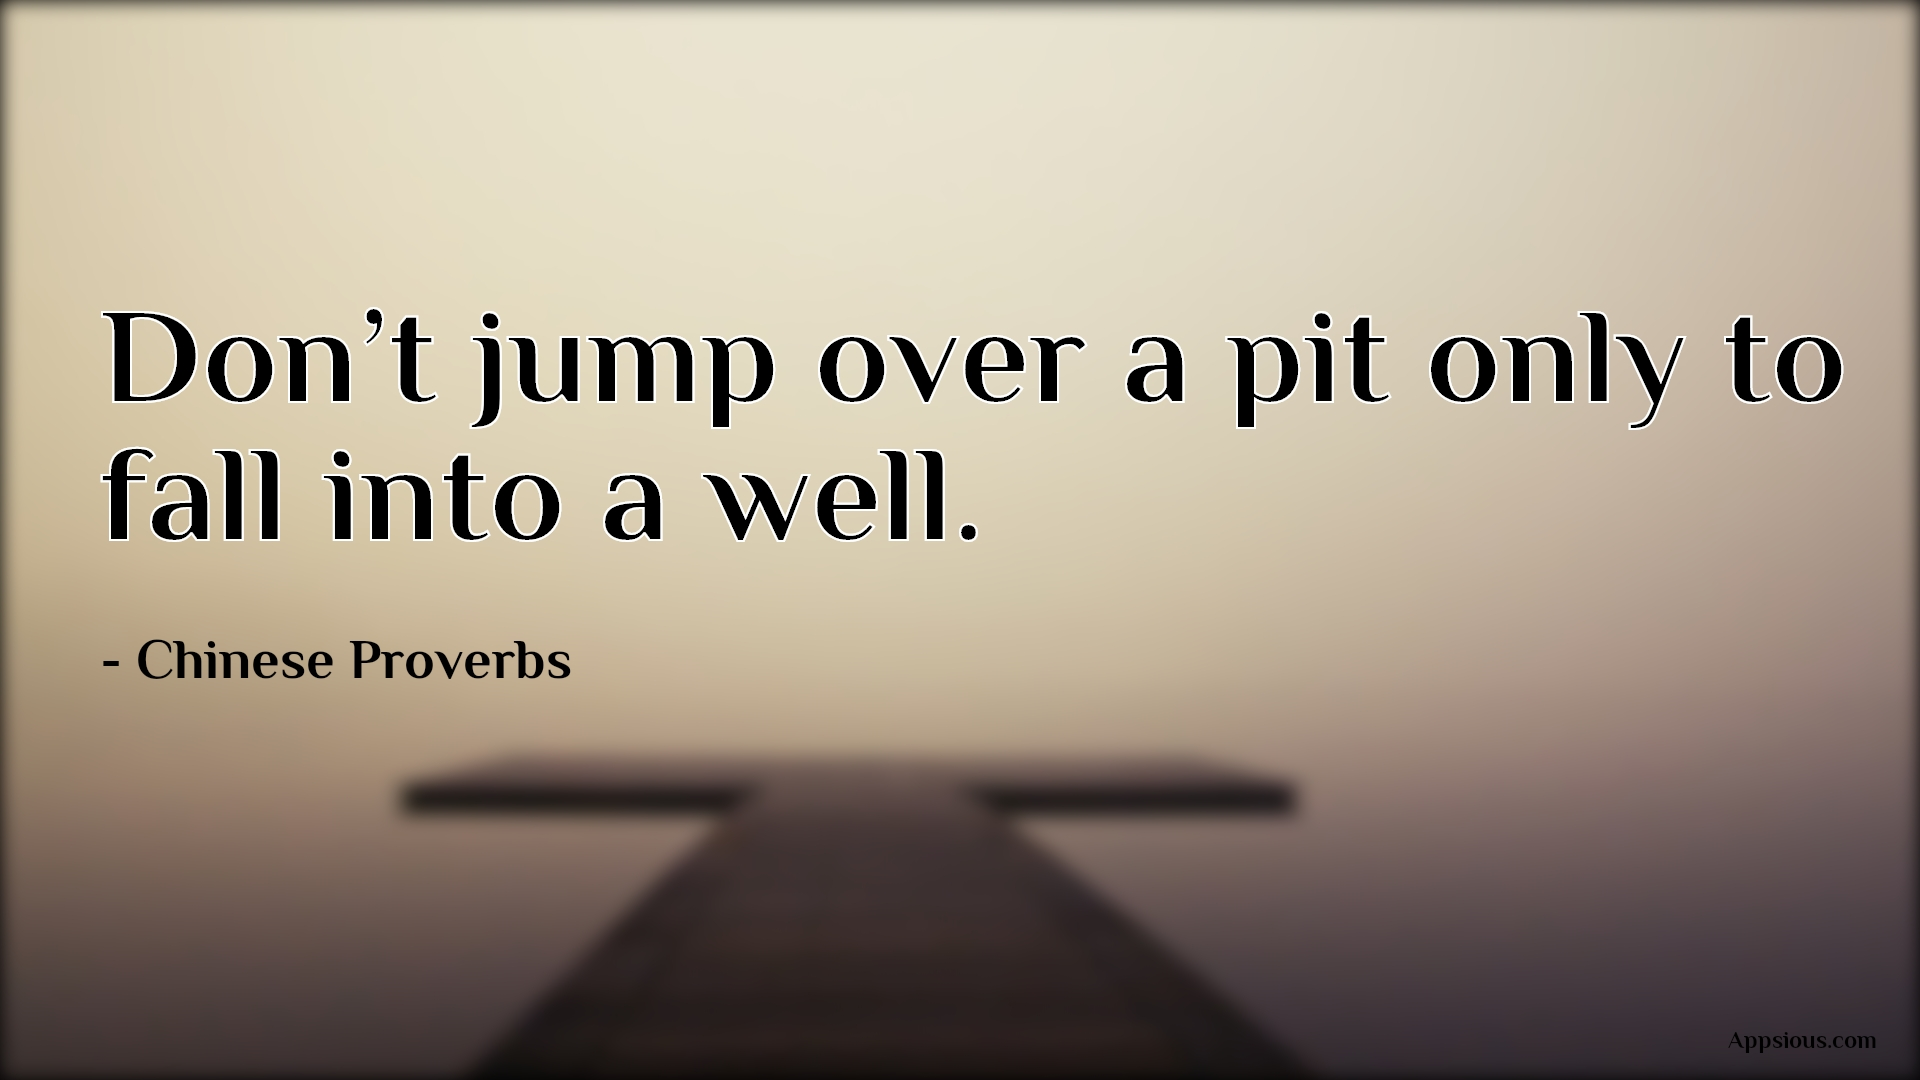 Don't jump over a pit only to fall into a well.